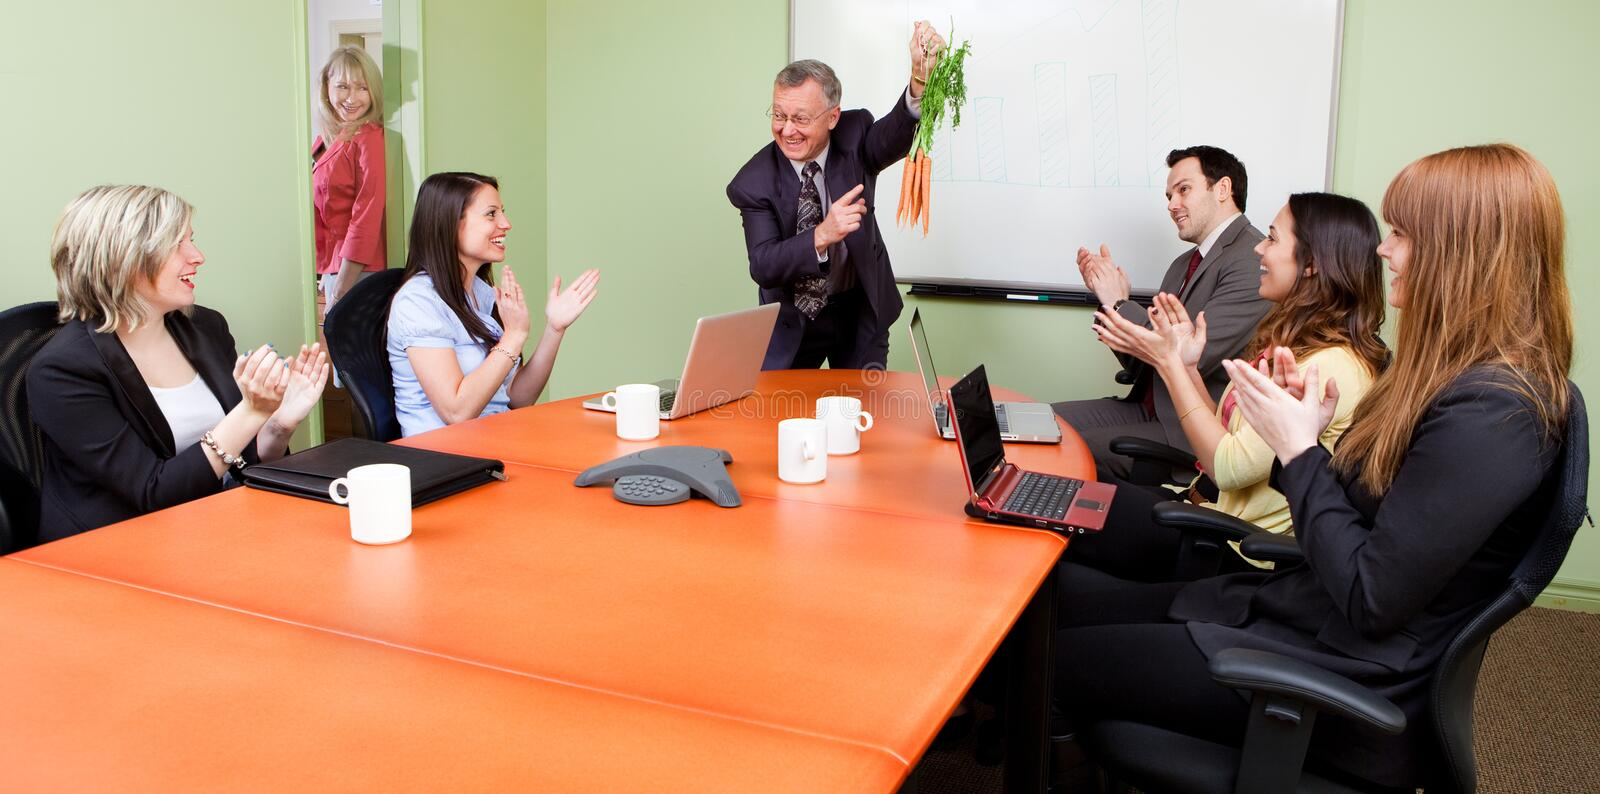 Download The Great Motivator Dangling Carrots Stock Image - Image of executive, humour: 23064873